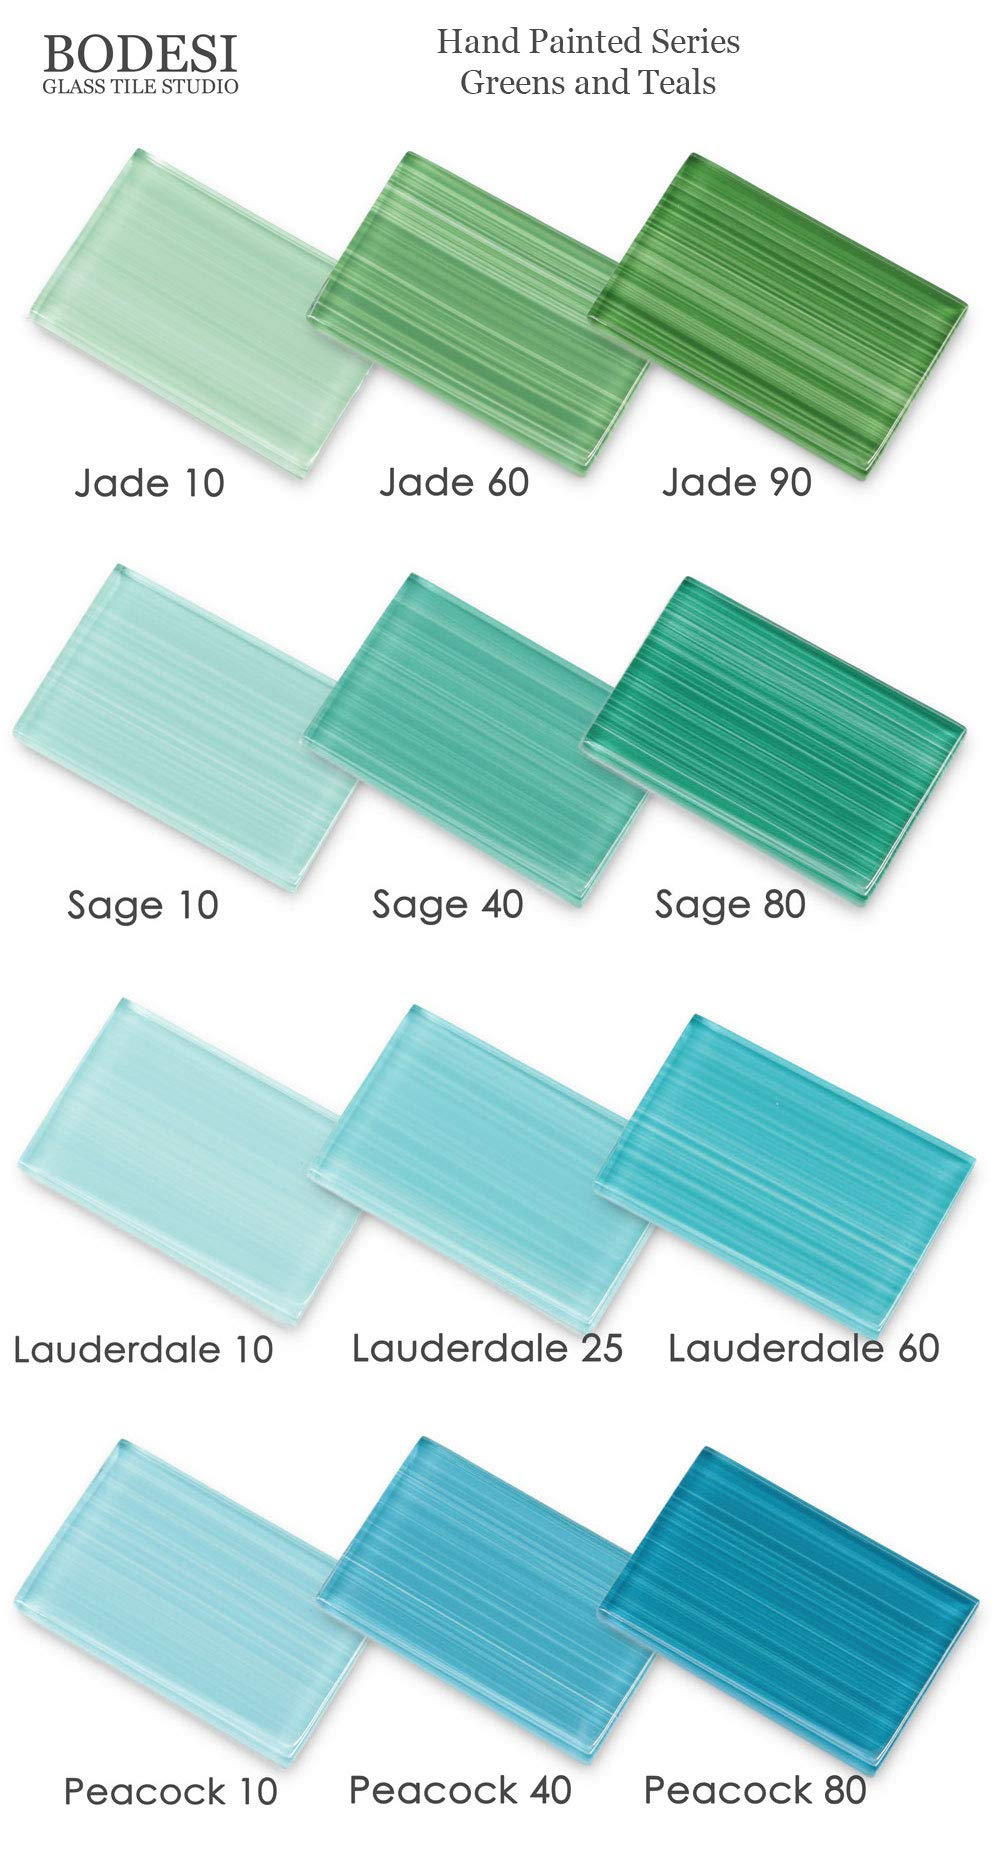 Greens and Teals, Hand Painted Glass for Tile Kitchens and Bathrooms Master Sample Pack by Bodesi - Mosaic and Glass Tile